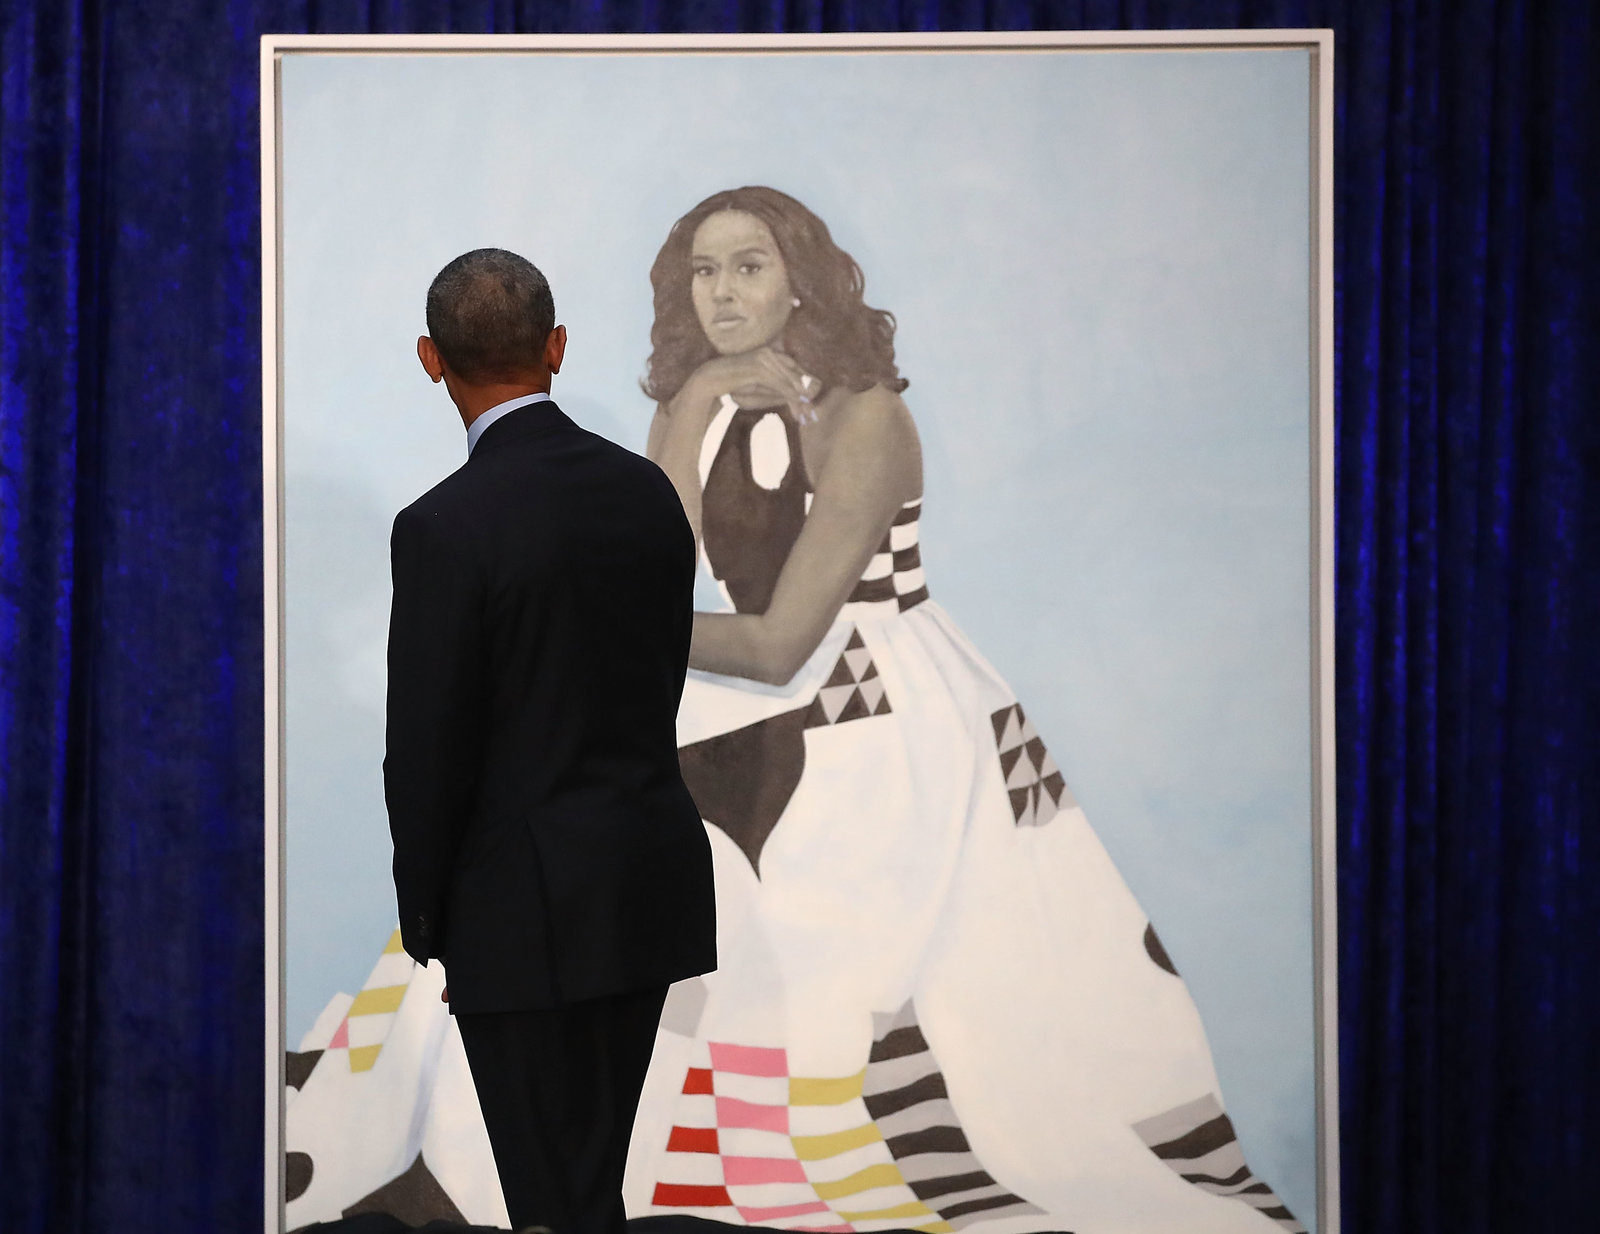 Barack Obama gazes at his wife's newly unveiled portrait on Monday. The painting of Michelle Obama will be on display through November in the National Portrait Gallery's 'Recent Acquisitions' section. (Mark Wilson/Getty Images)